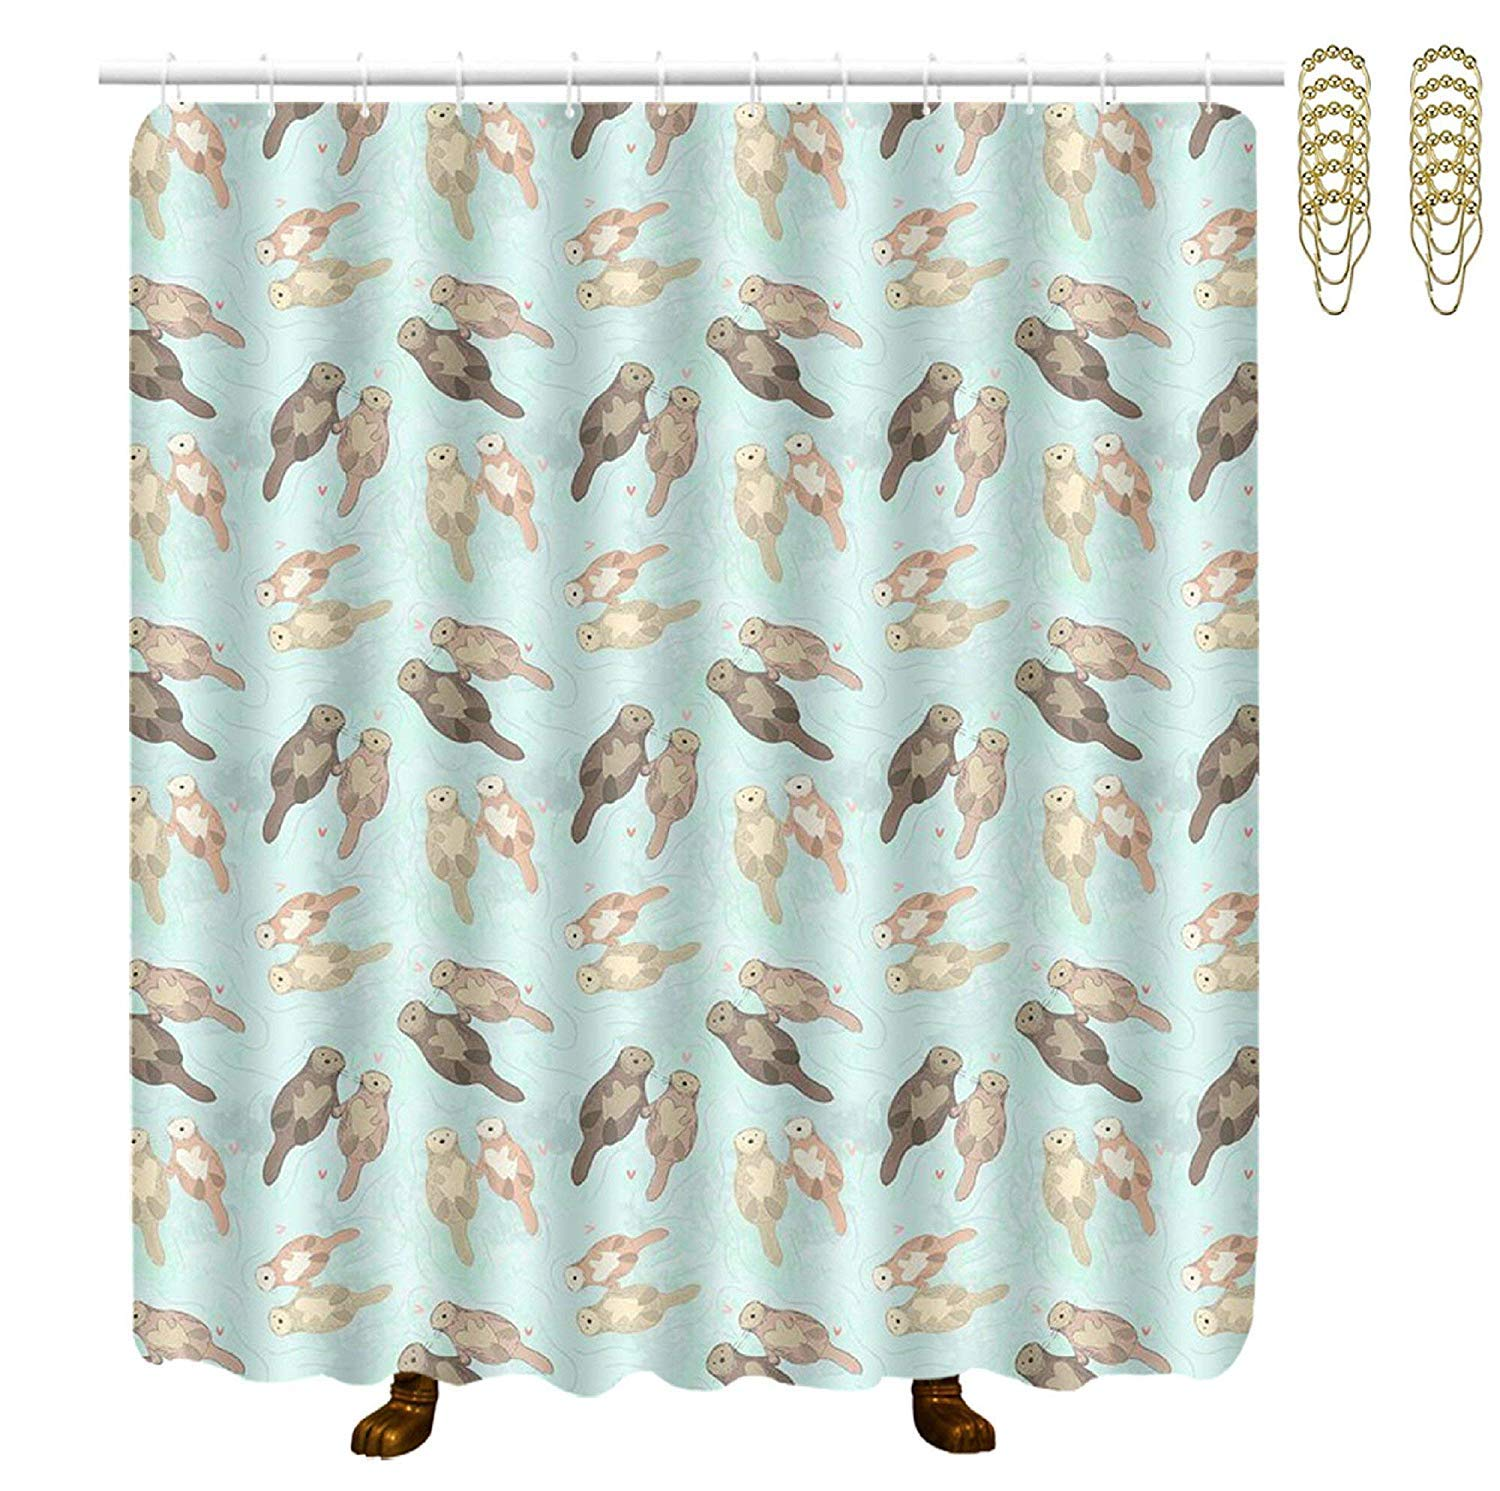 COVASA Decorative Water Repellant Shower Curtain 72x72 Inches Comes with 12 Hooks (Cute Sloths)